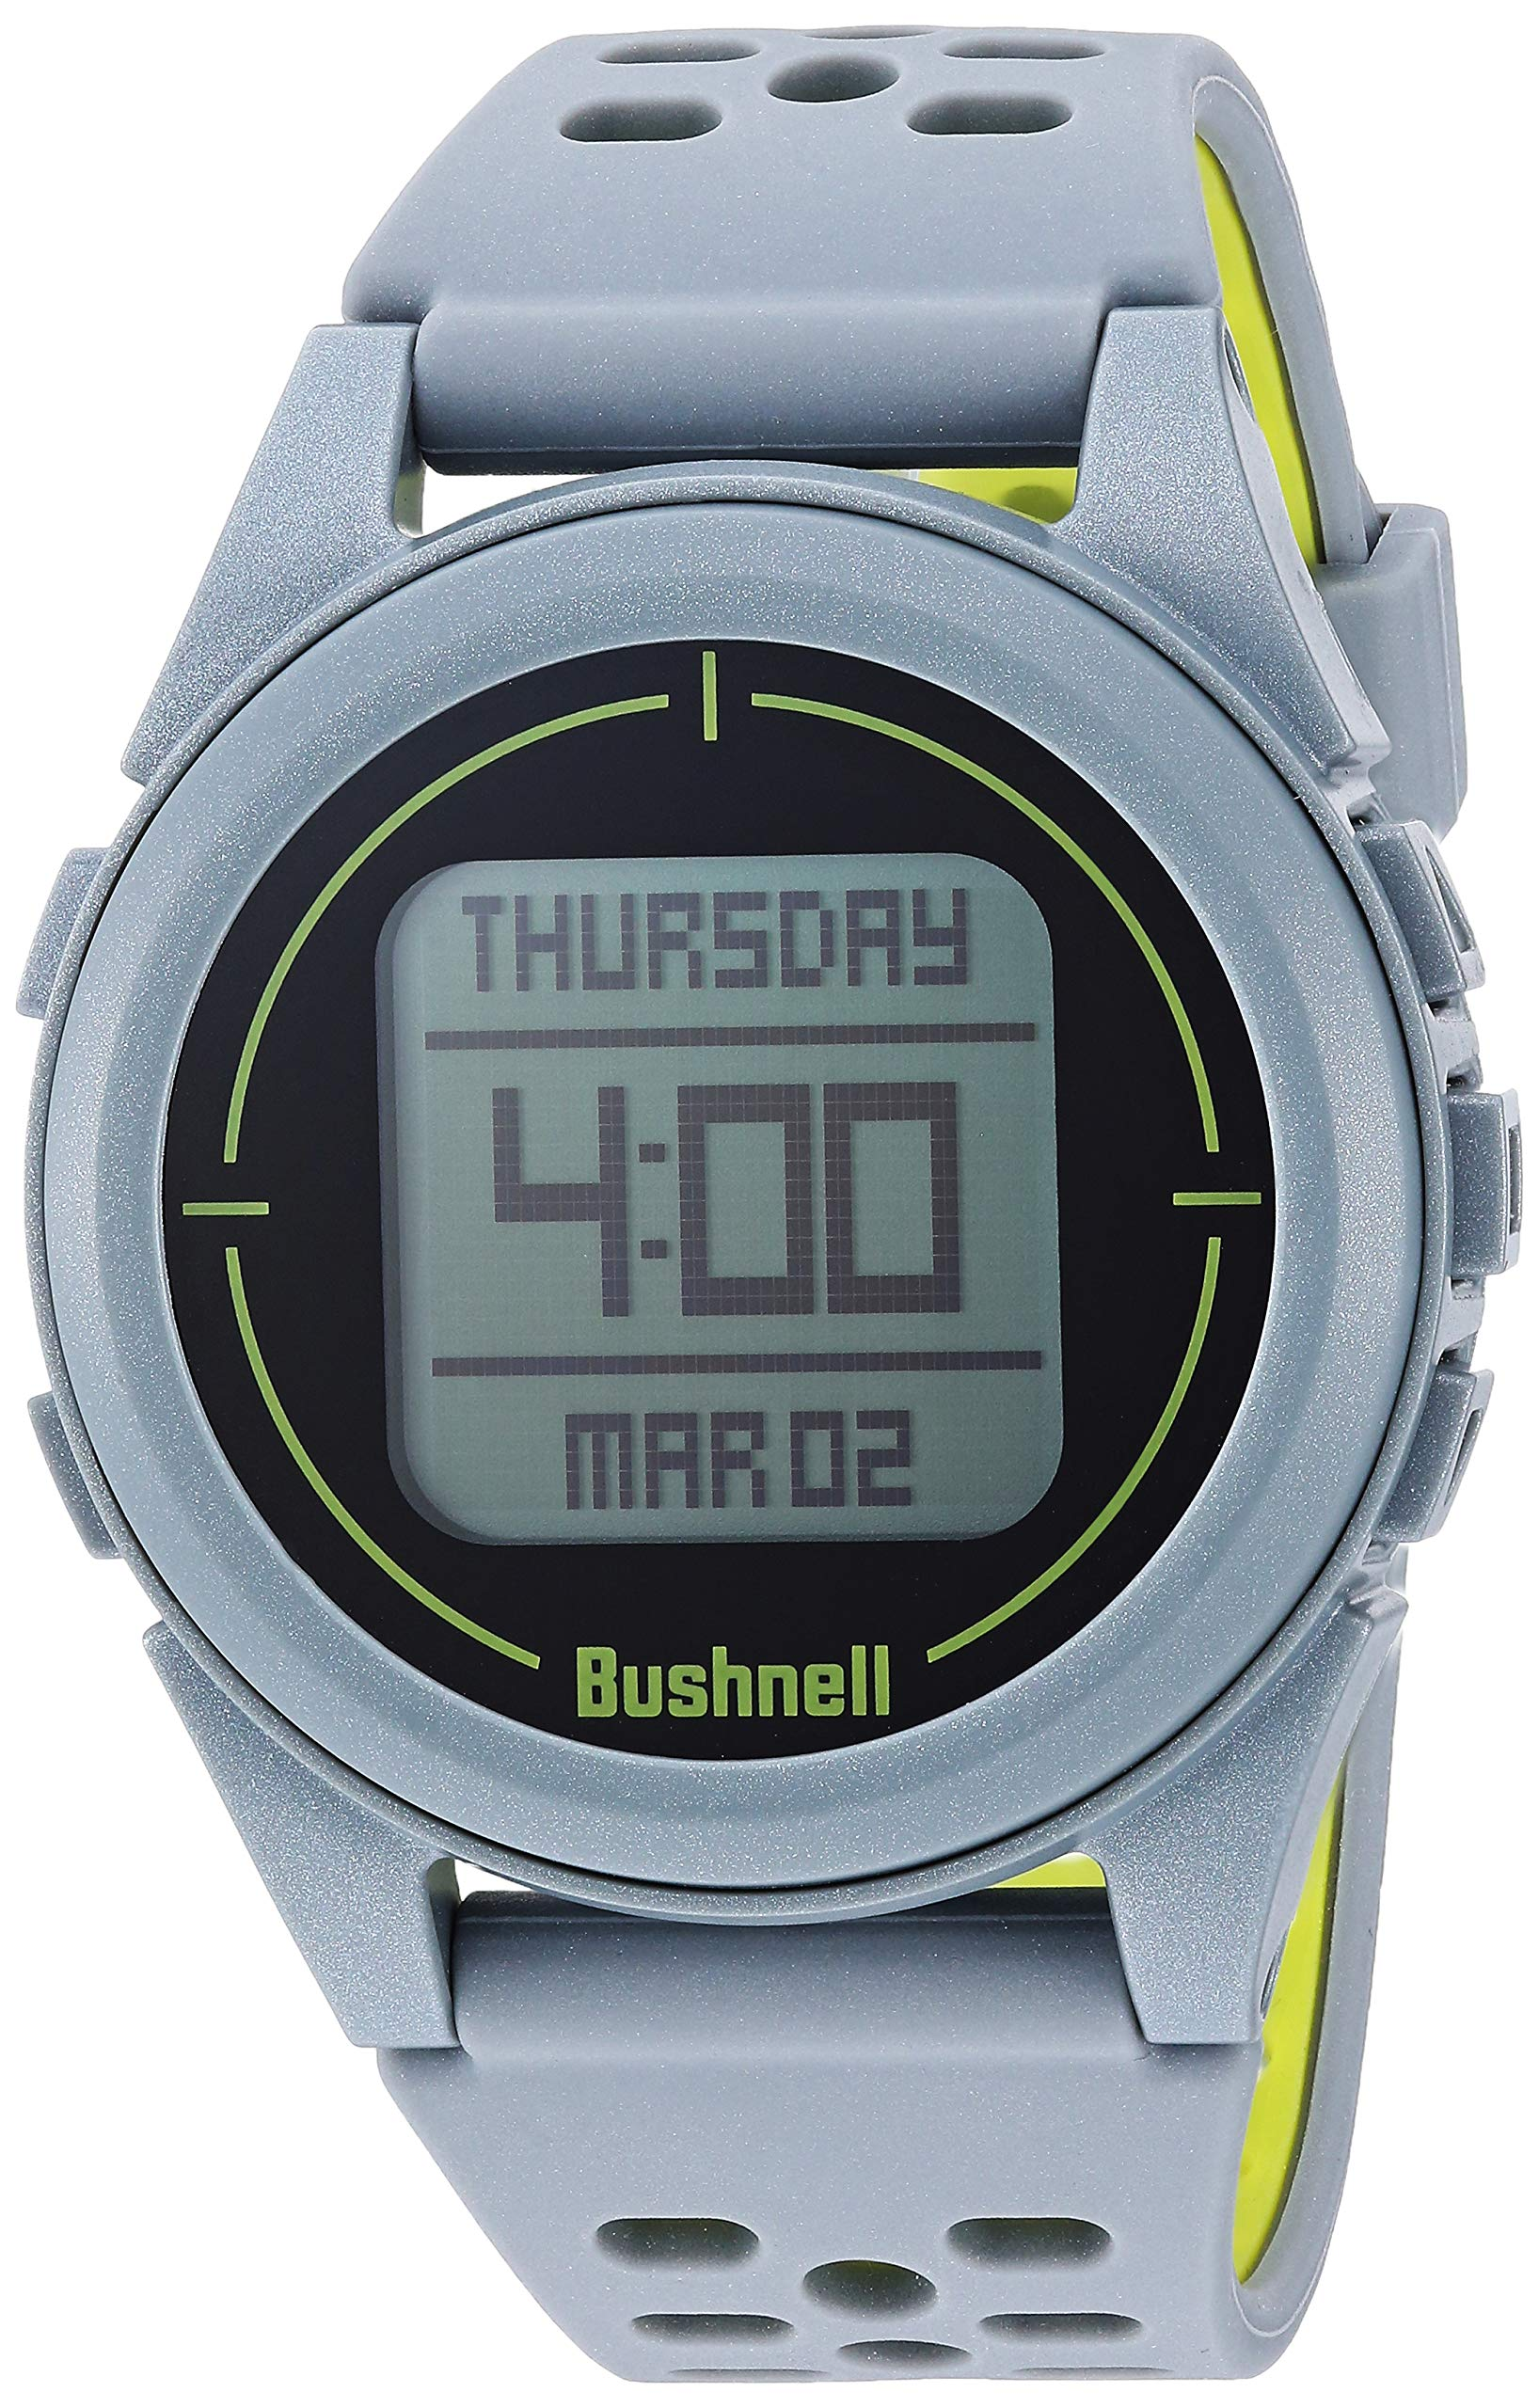 Bushnell Neo Ion 2 Golf GPS Watch, Silver/Green by Bushnell